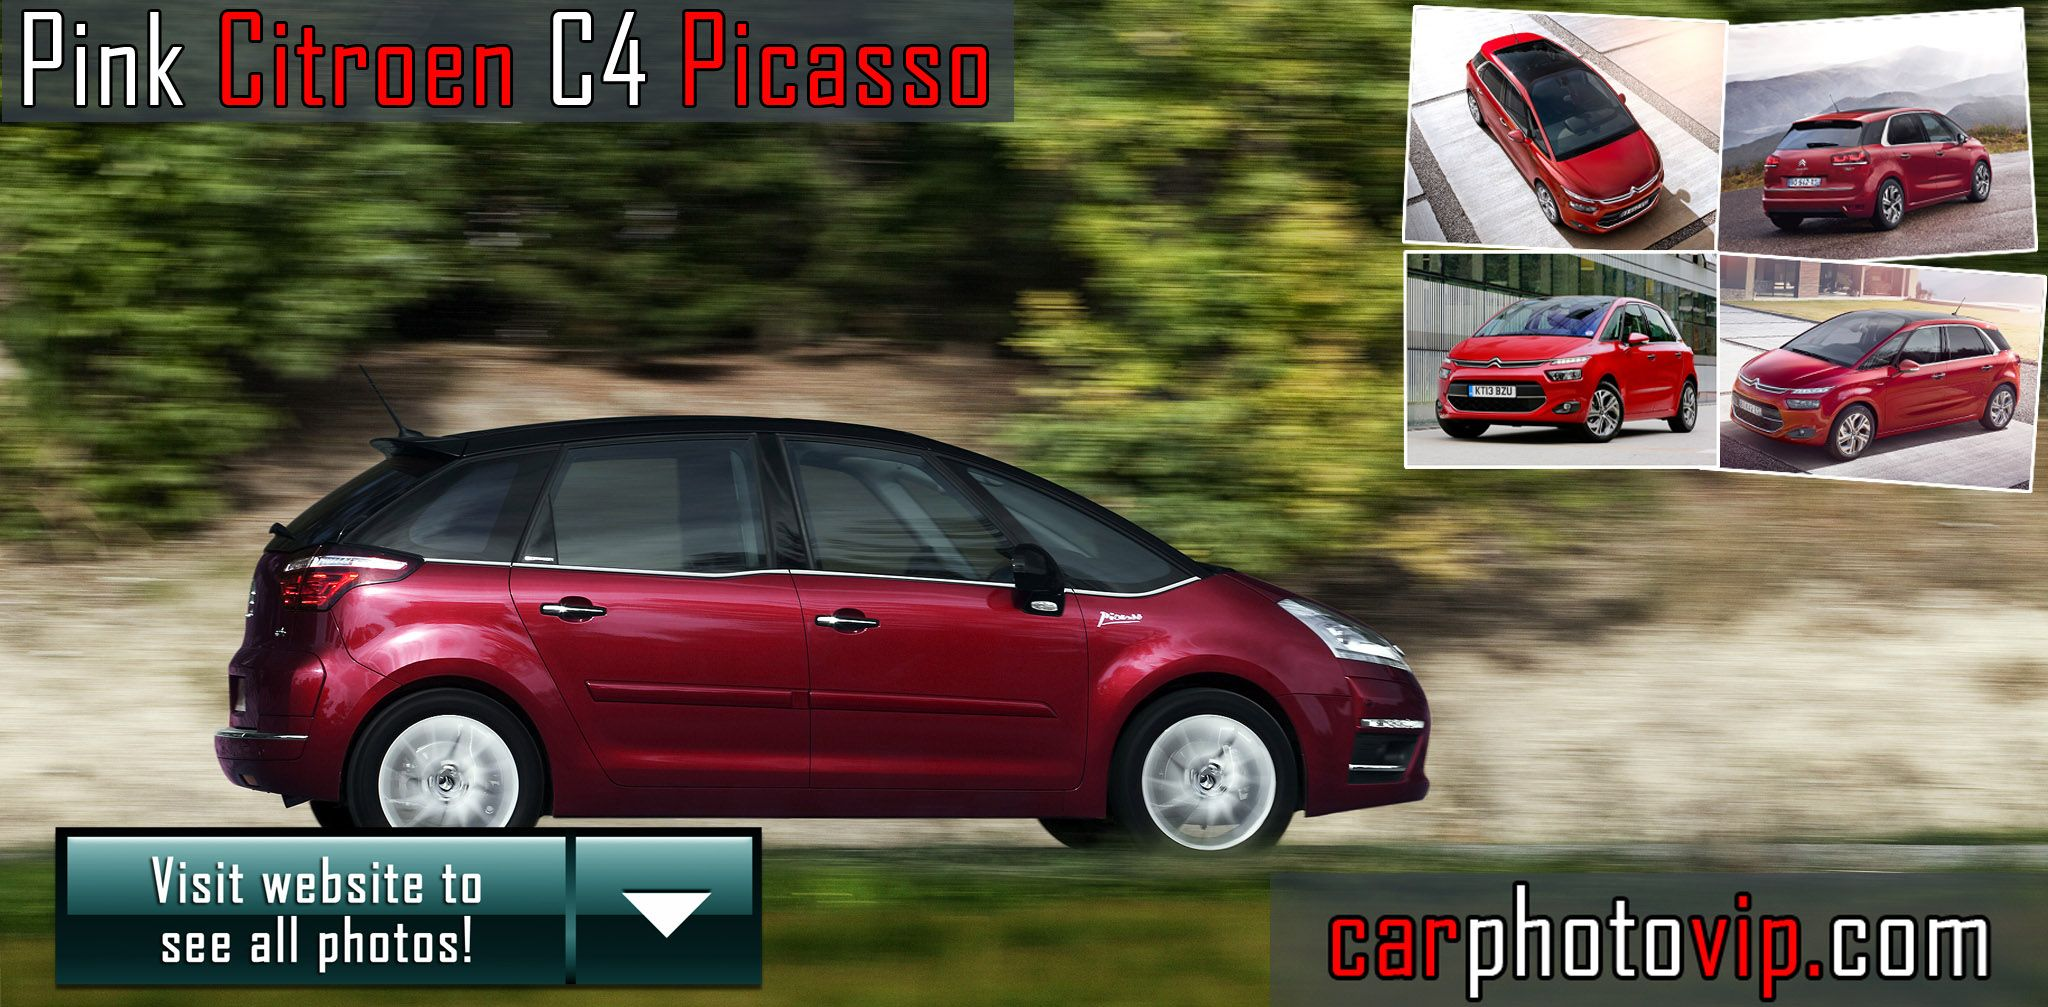 Pink Citroen C4 Picasso 5 photos 1 car Pinterest